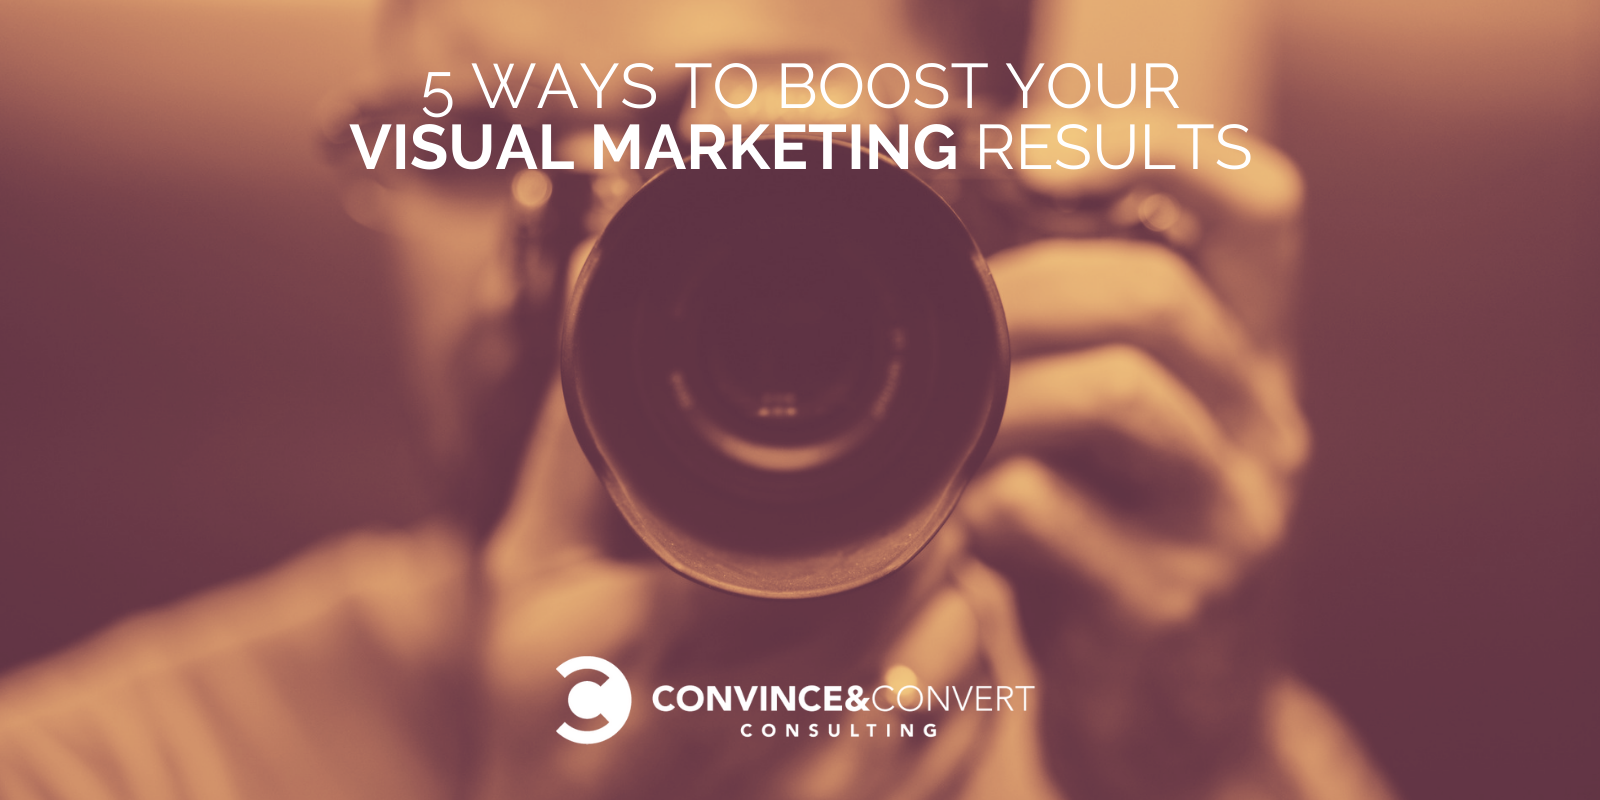 5 Ways to Boost Your Visual Marketing Results